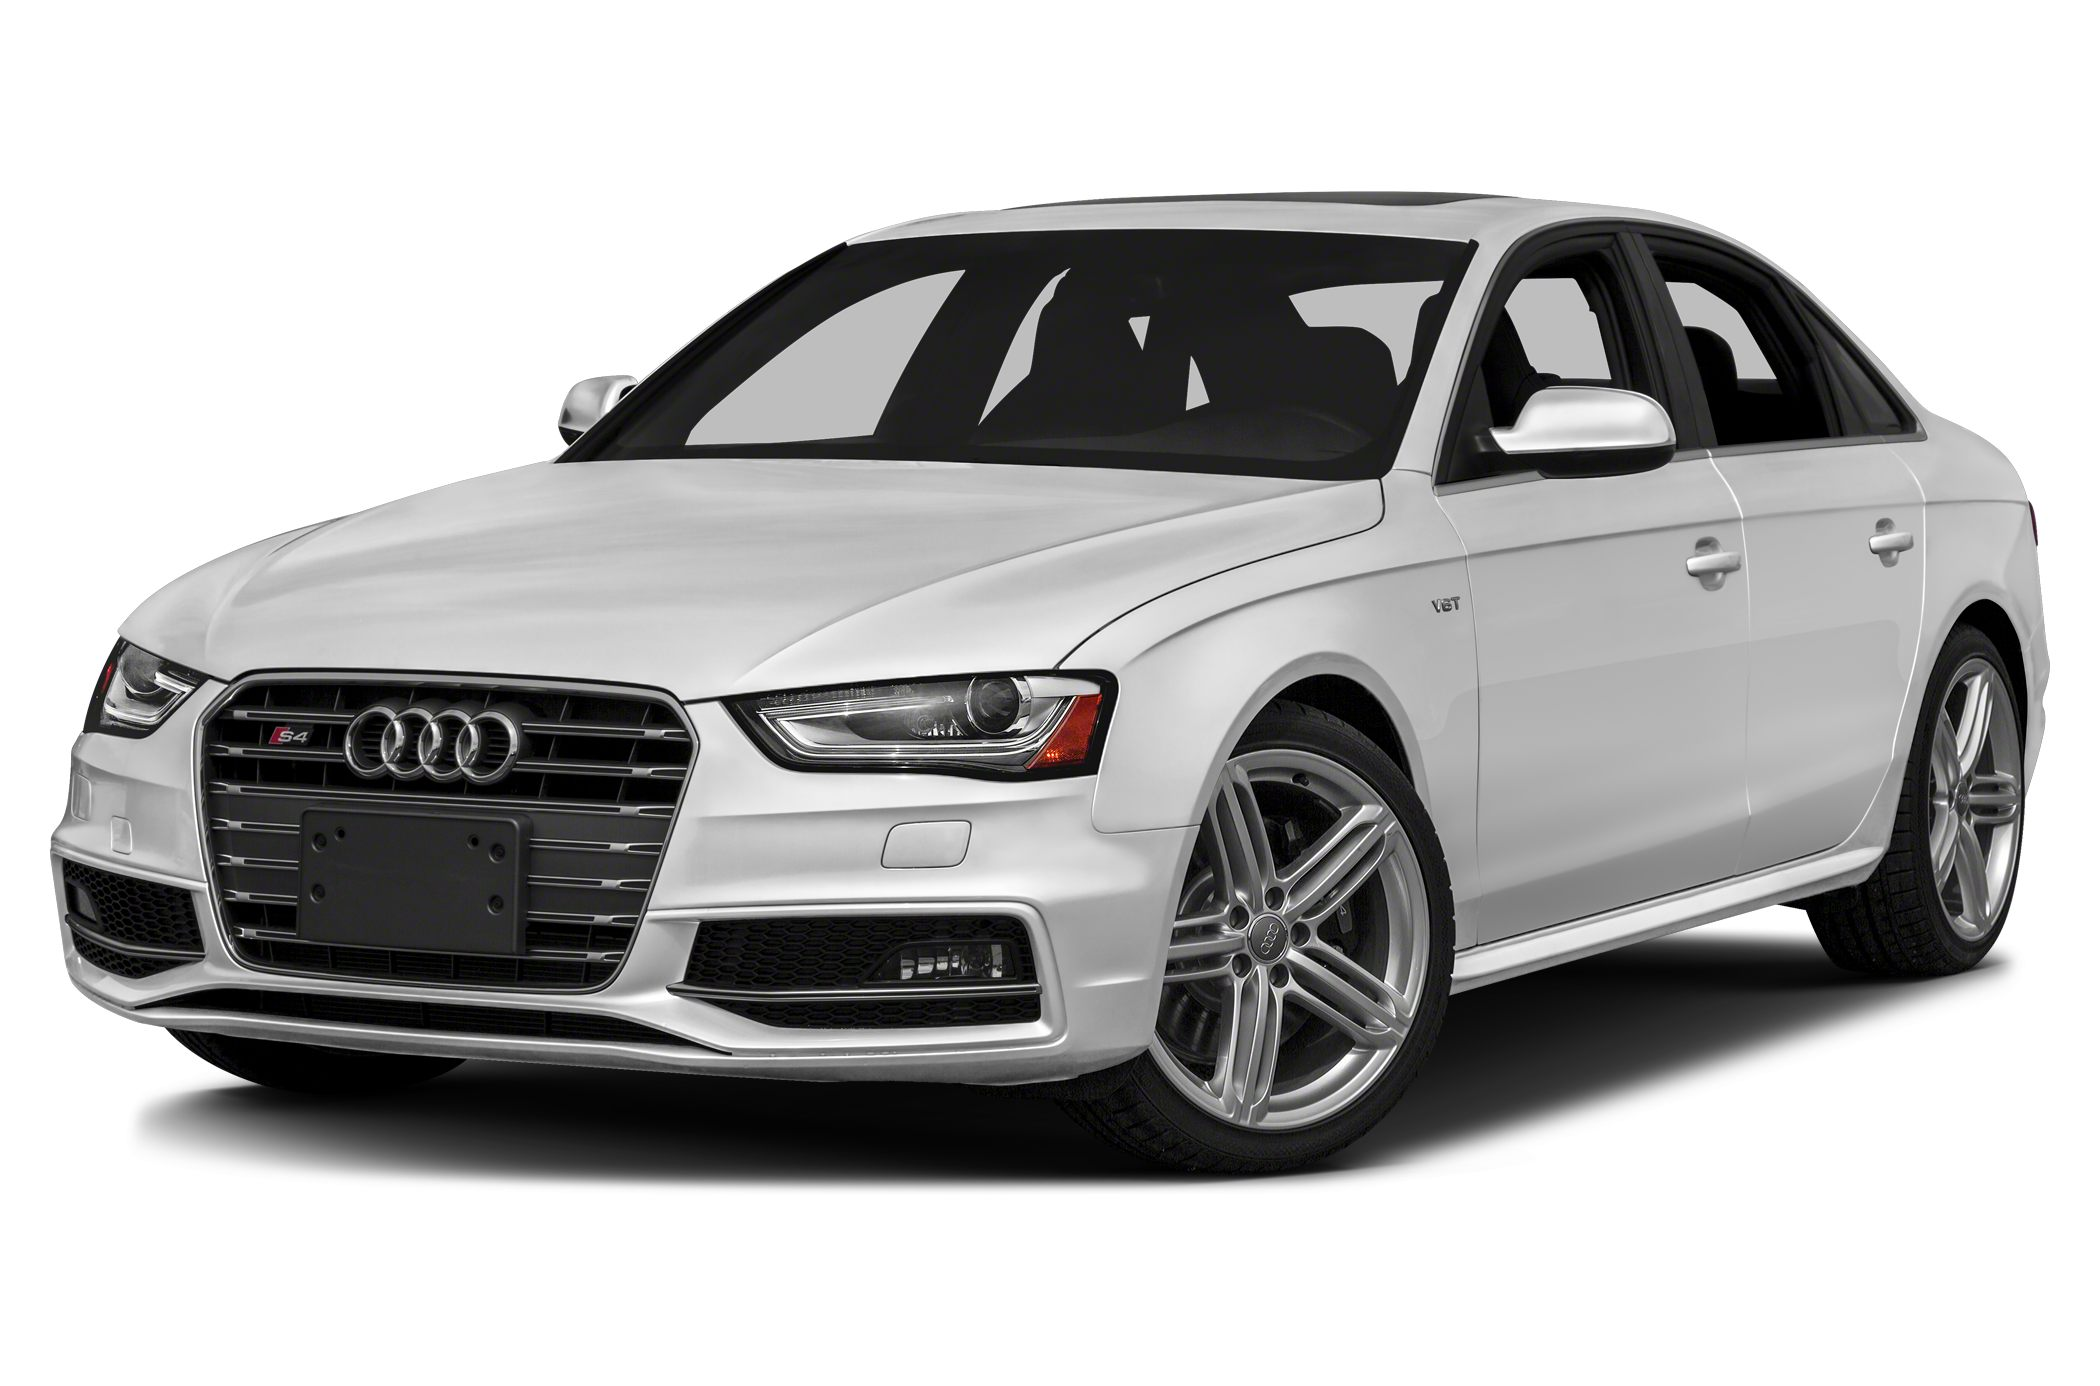 Audi S4 News Photos And Buying Information Autoblog